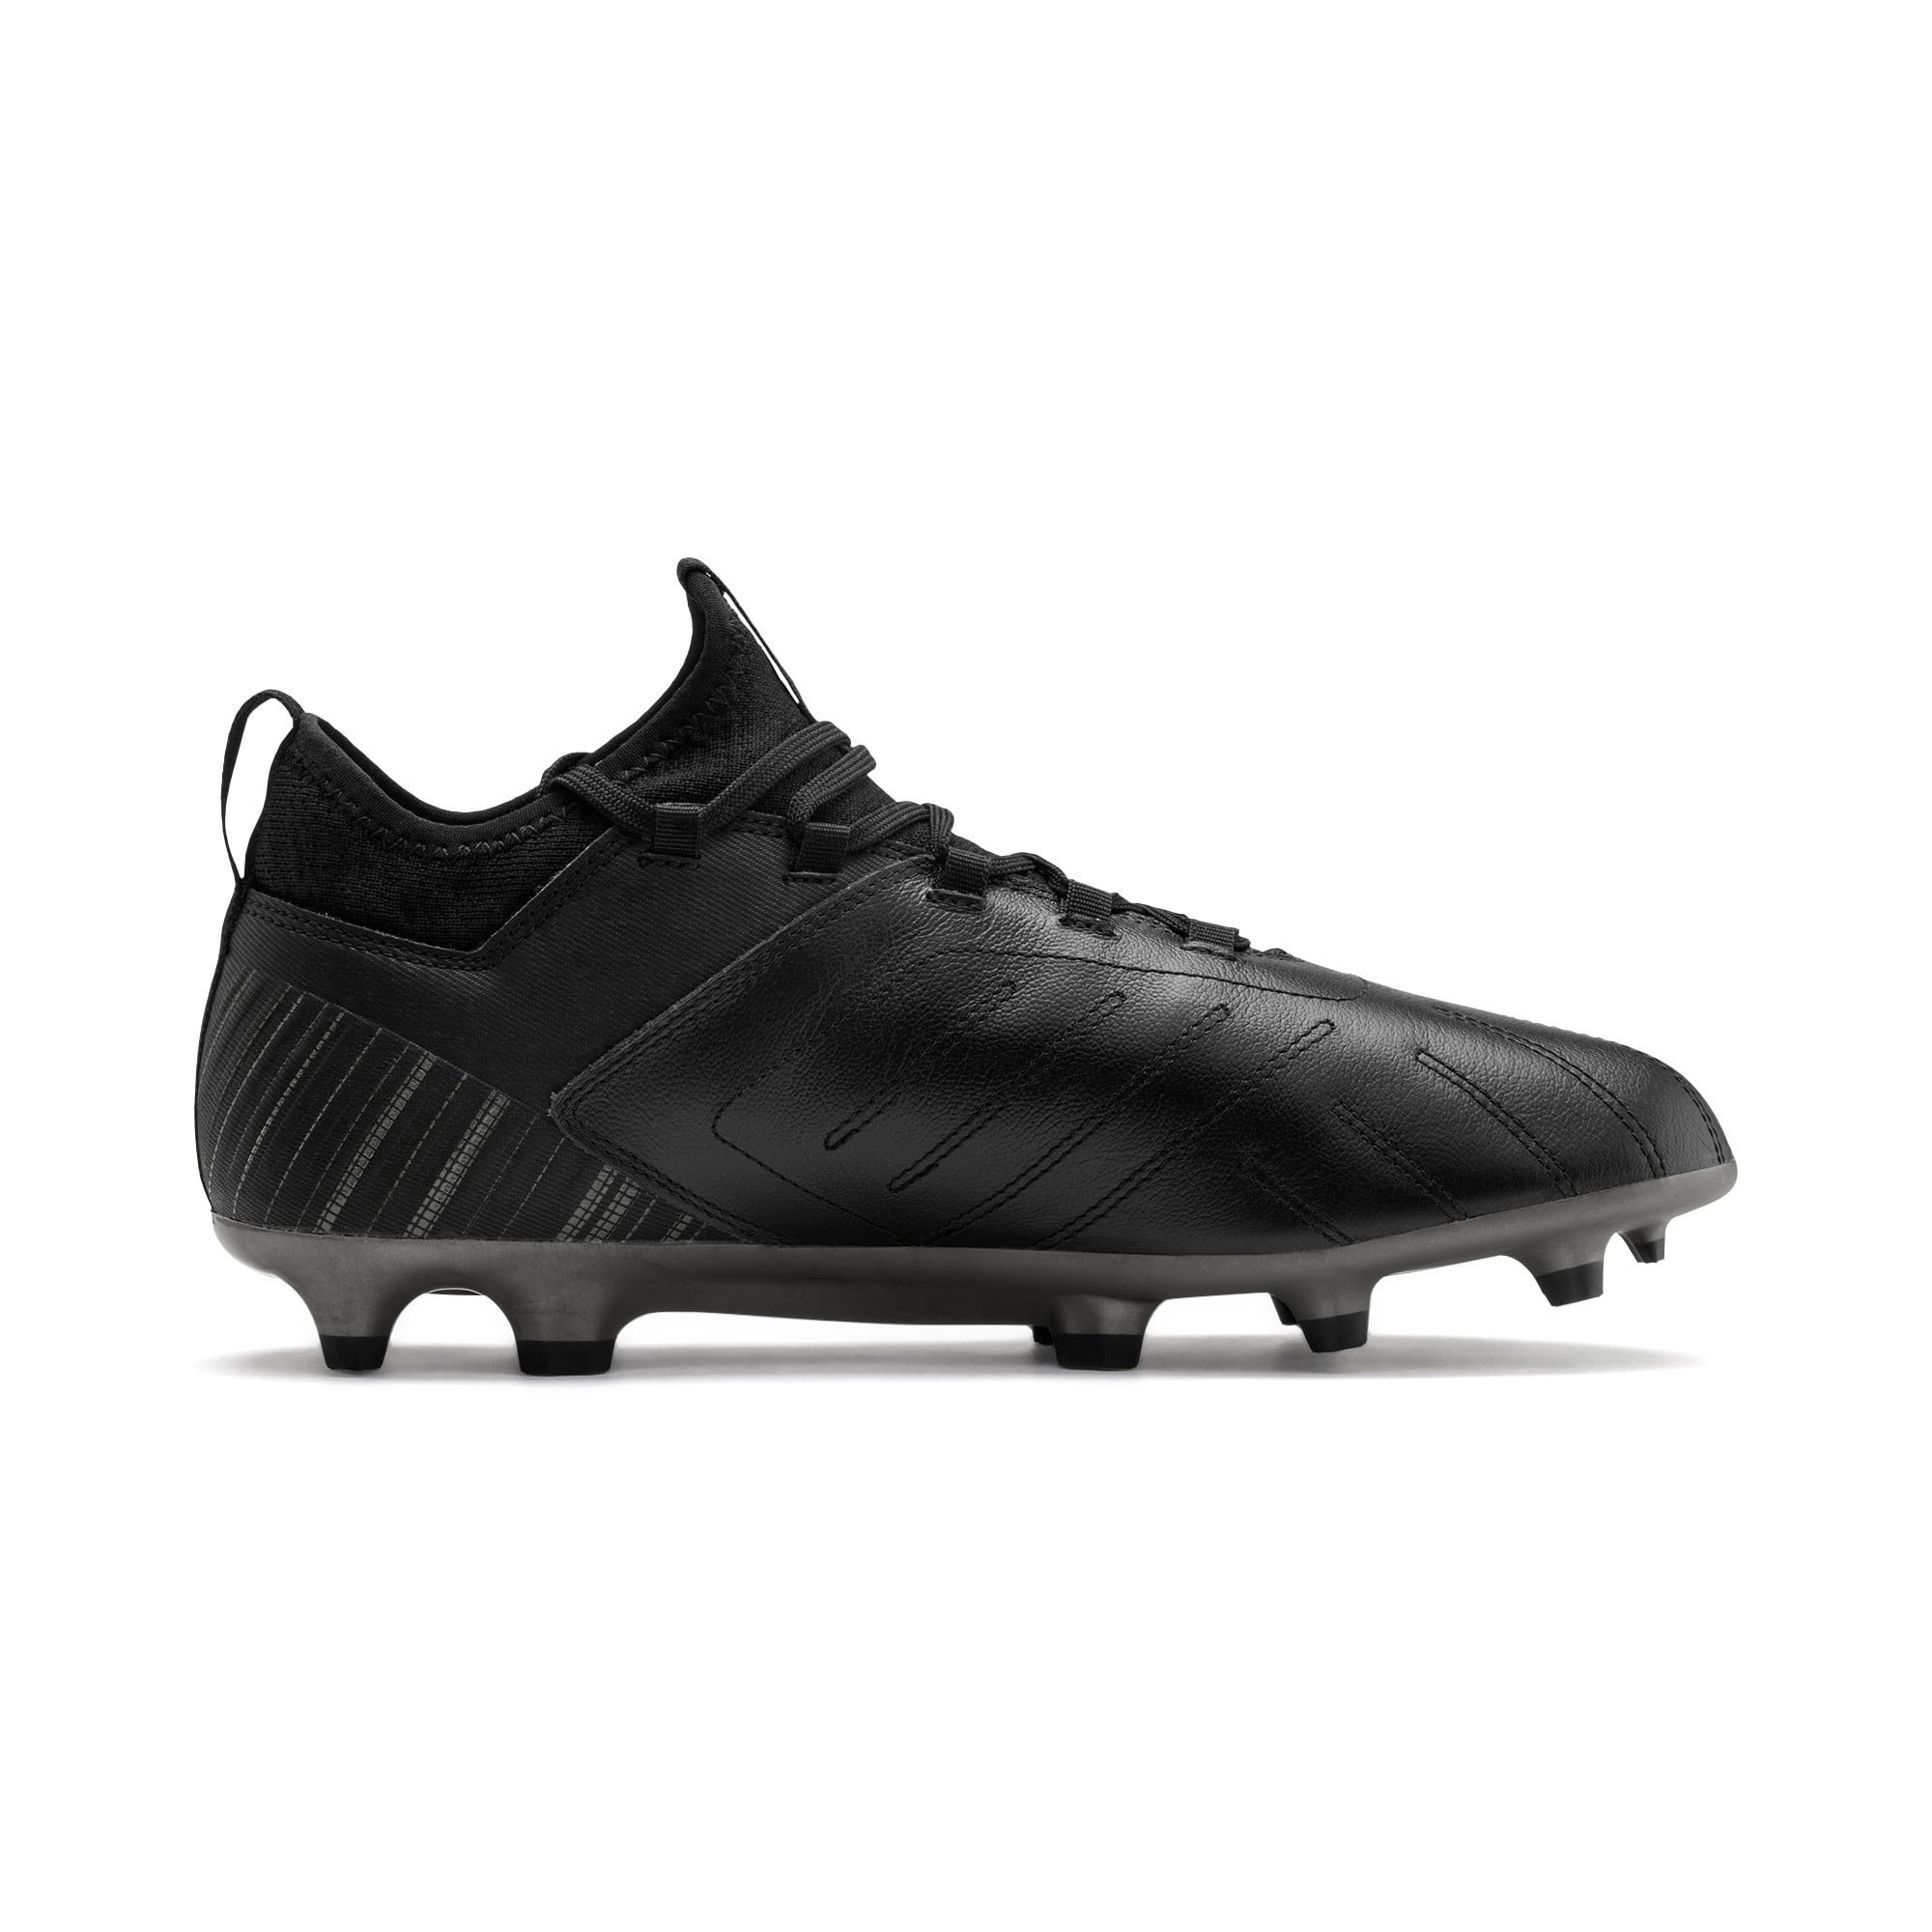 Thumbnail 6 of PUMA ONE 5.3 FG/AG Men's Football Boots, Black-Black-Puma Aged Silver, medium